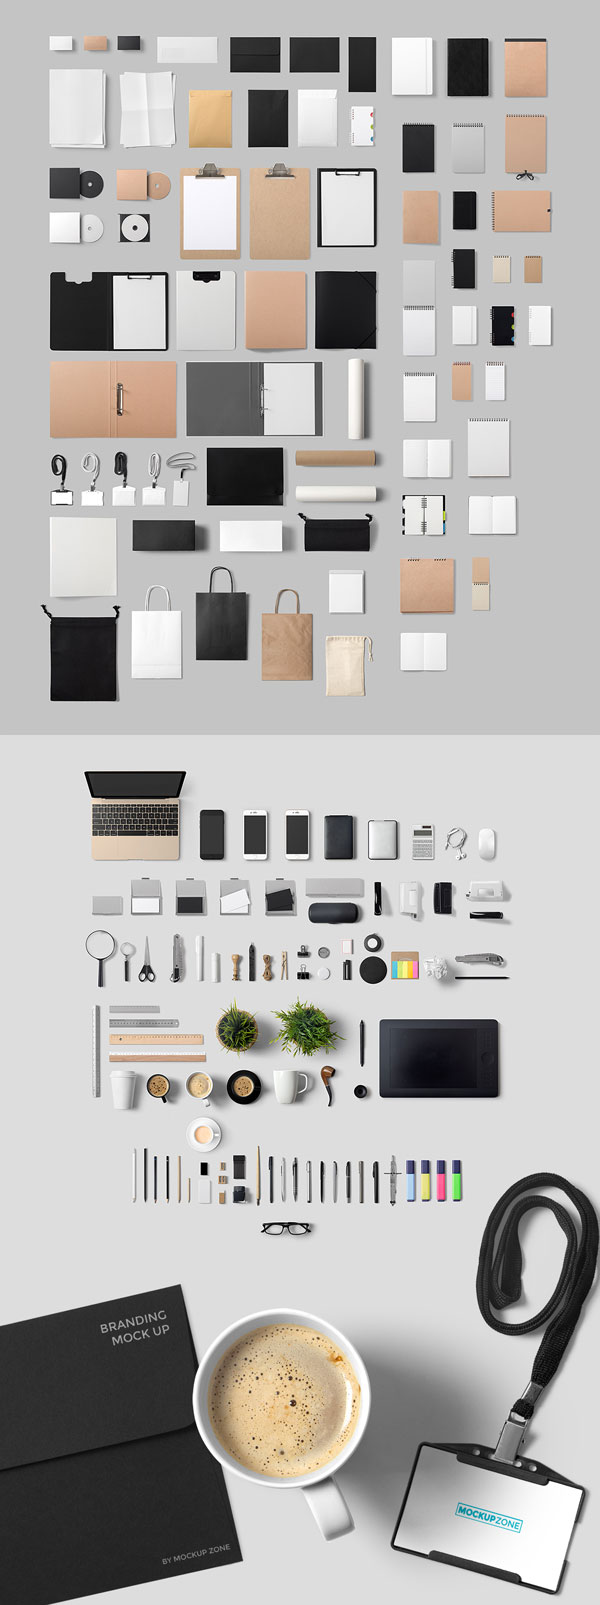 Lots of branding, office, and stationery items photographed in great quality.